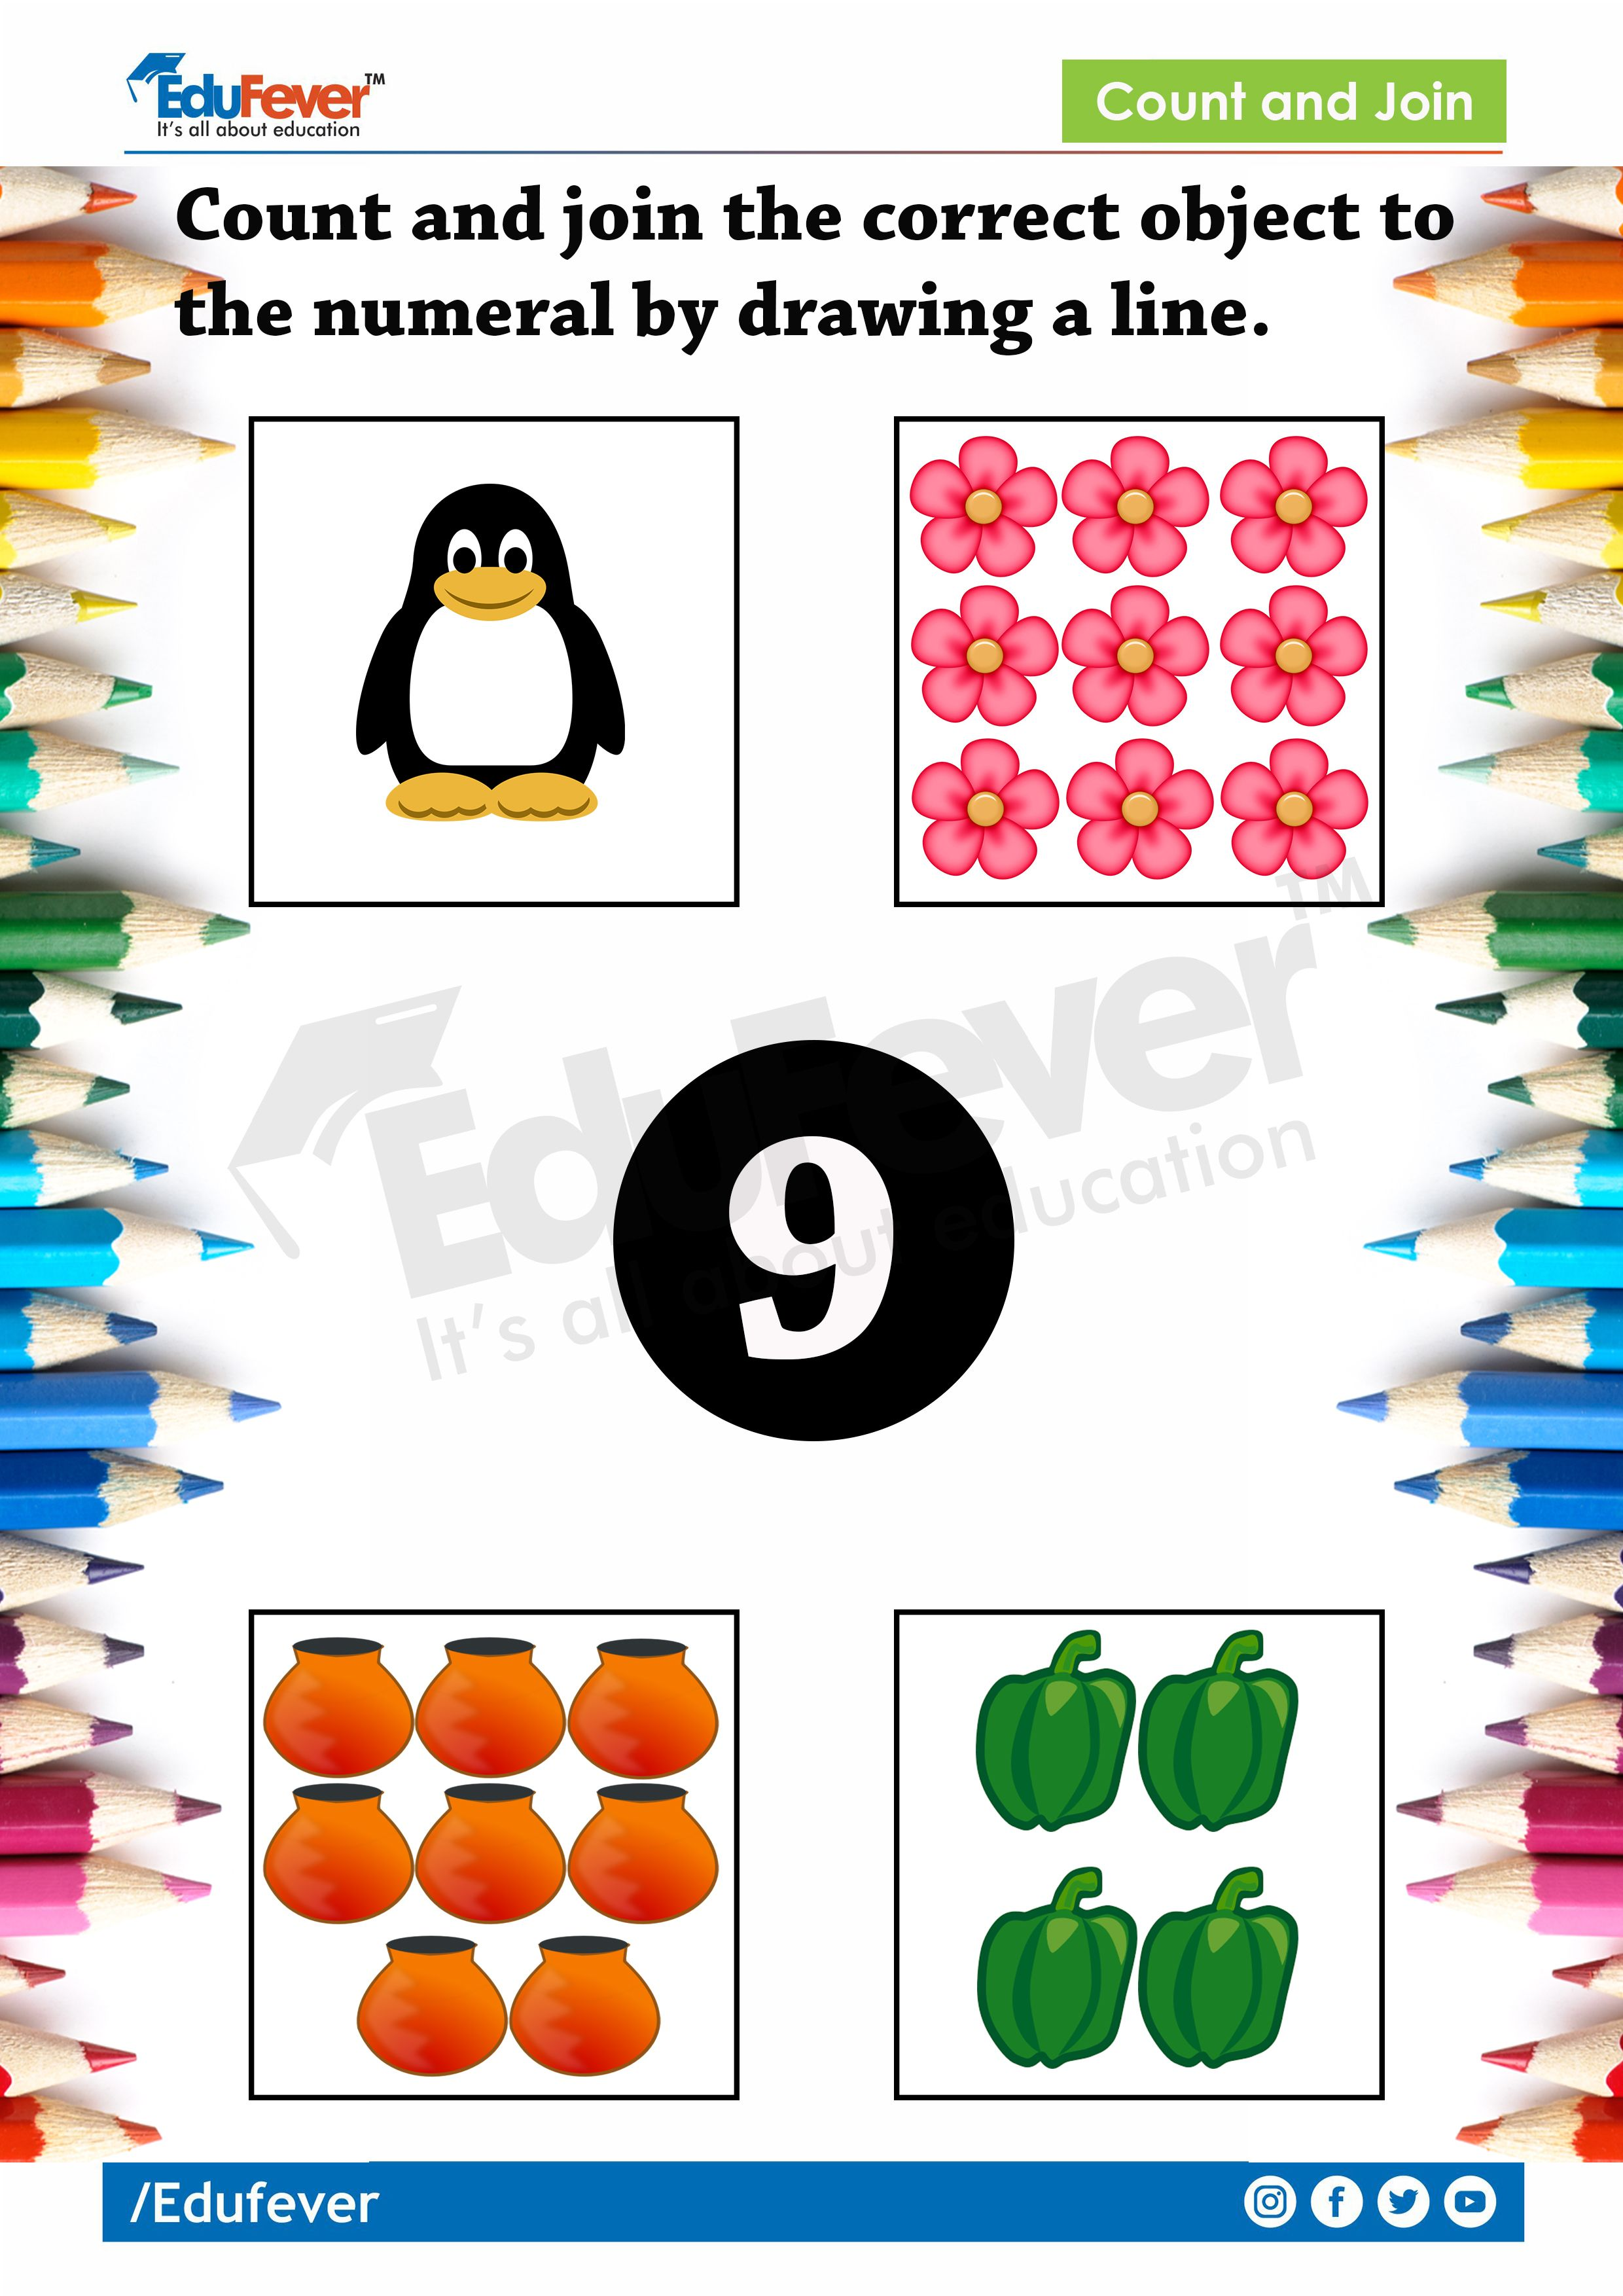 Lkg Worksheet Count And Join Mathematics Worksheets Lkg Maths Worksheets Worksheets Maths for lkg worksheets